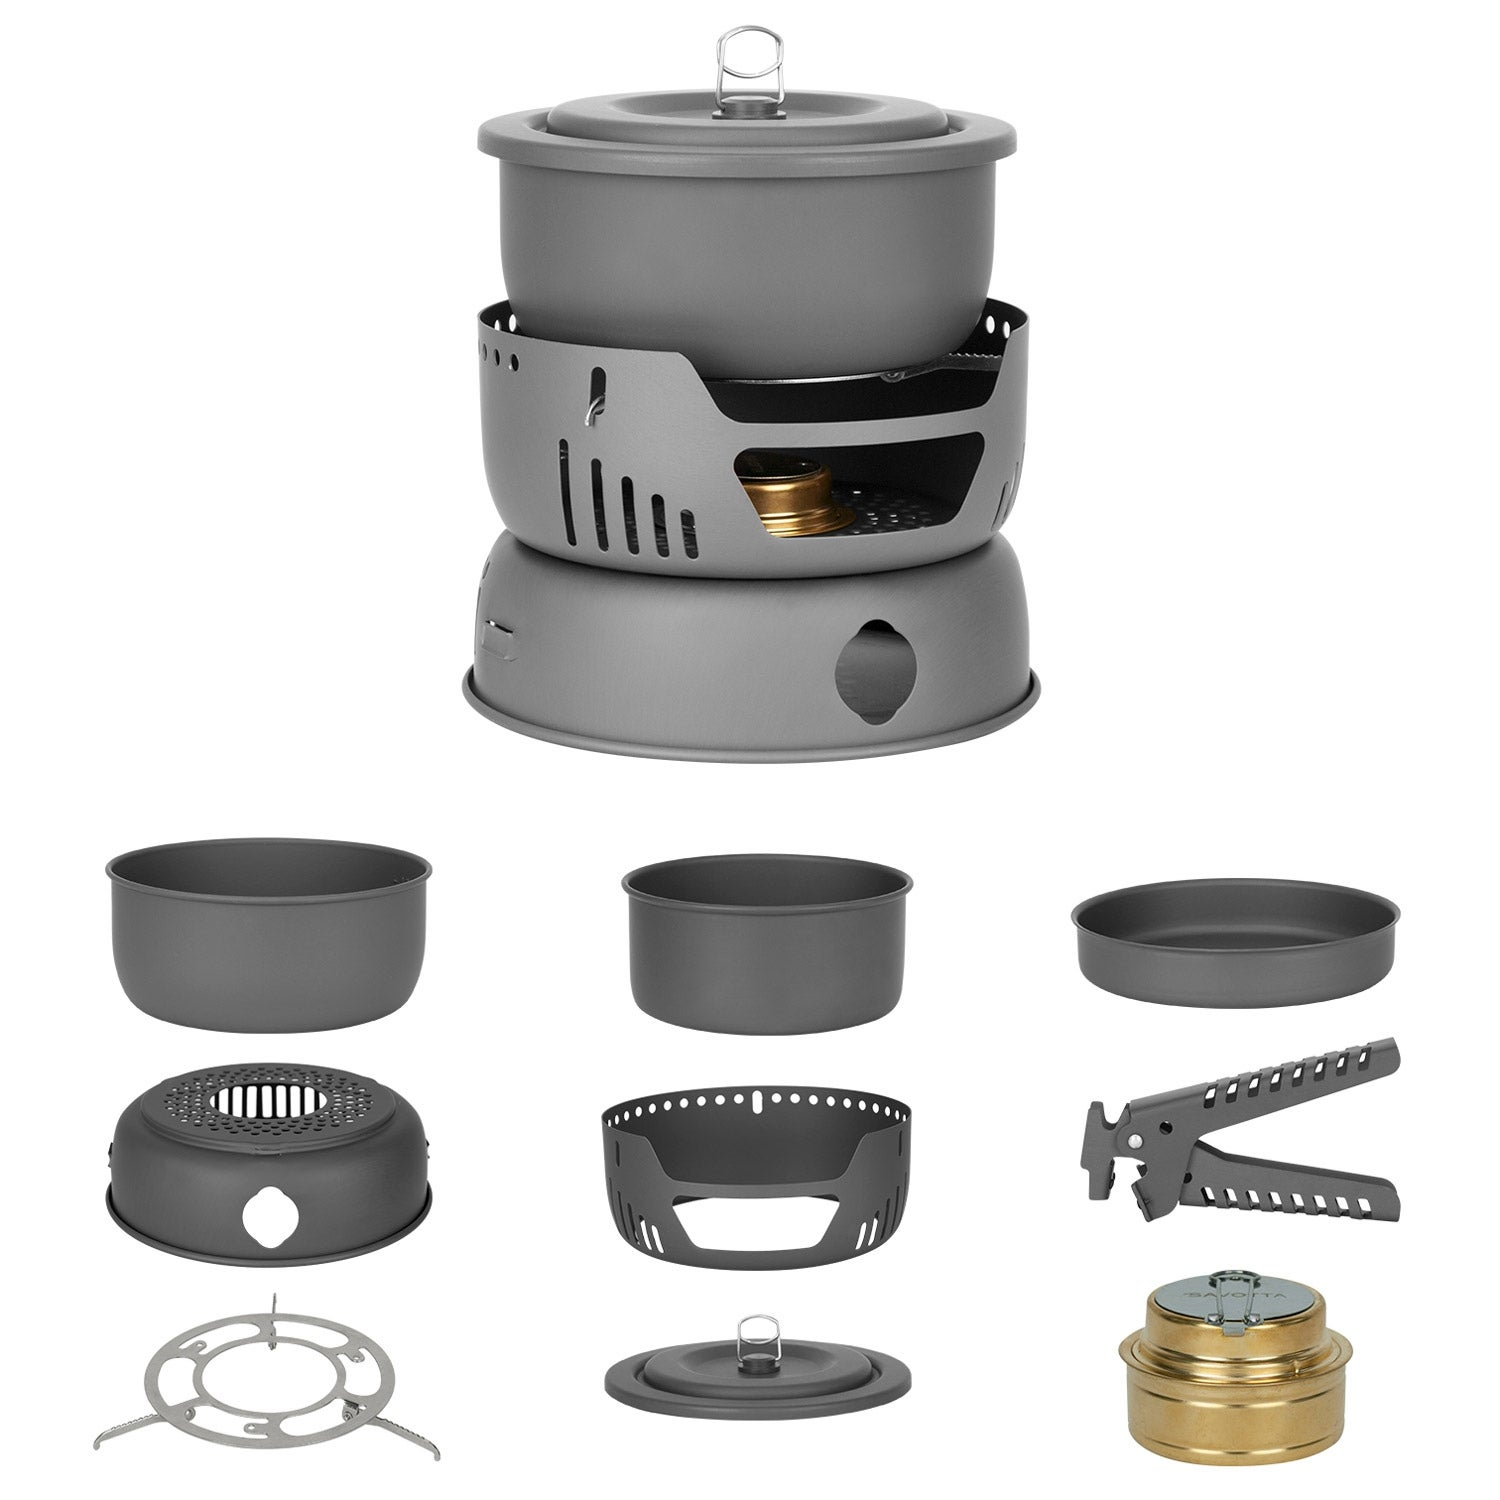 Winterial Camping Cookware With Alcohol Burner / 9 piece / Backpacking / Camping / Cooking / 2.1 lbs